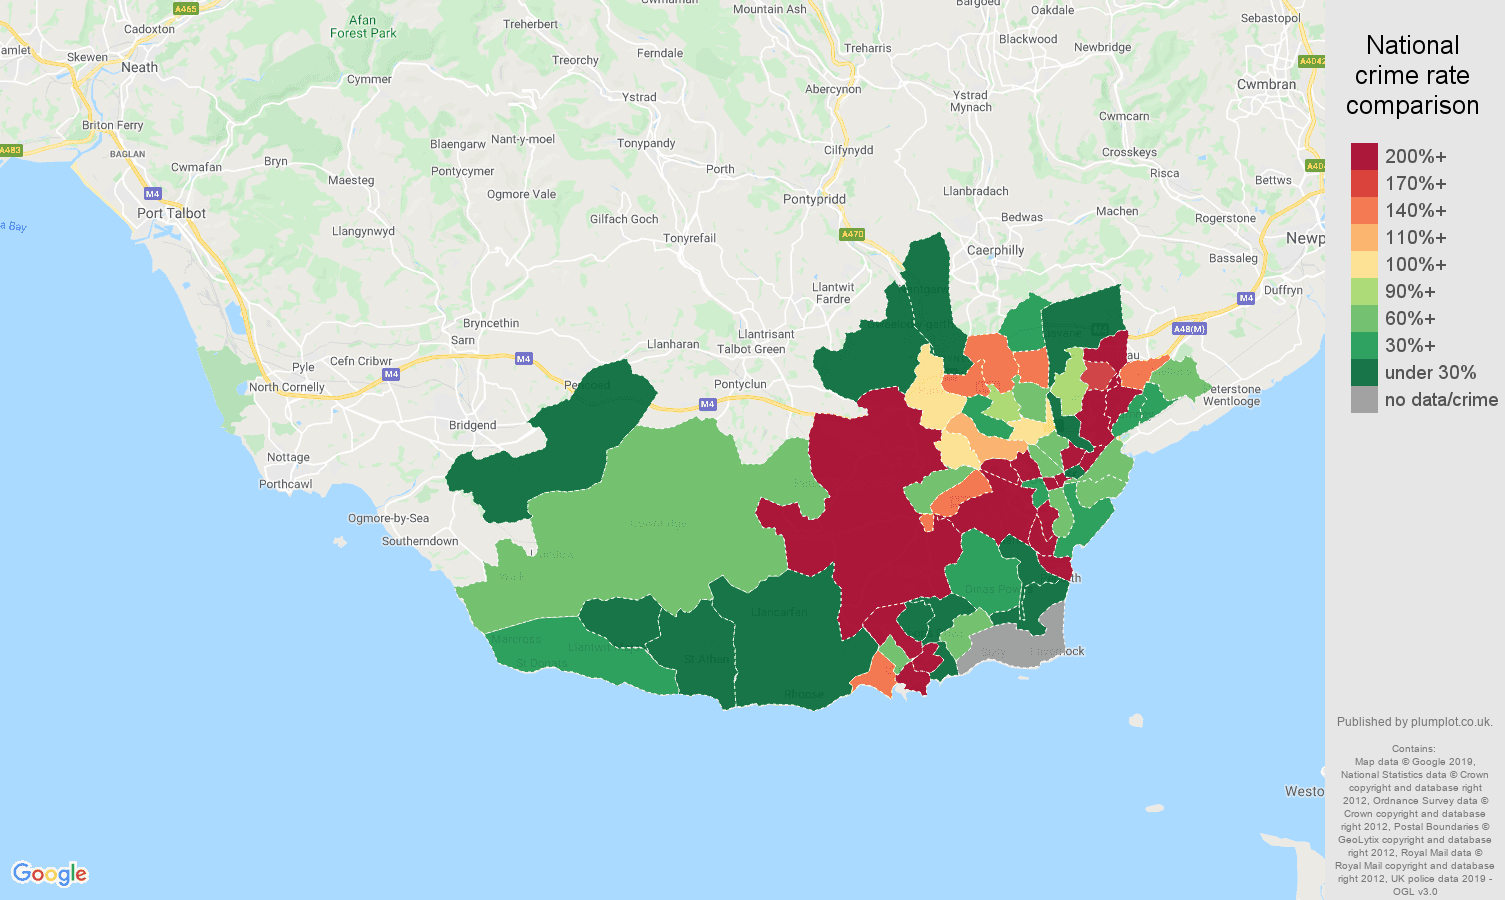 South Glamorgan shoplifting crime rate comparison map